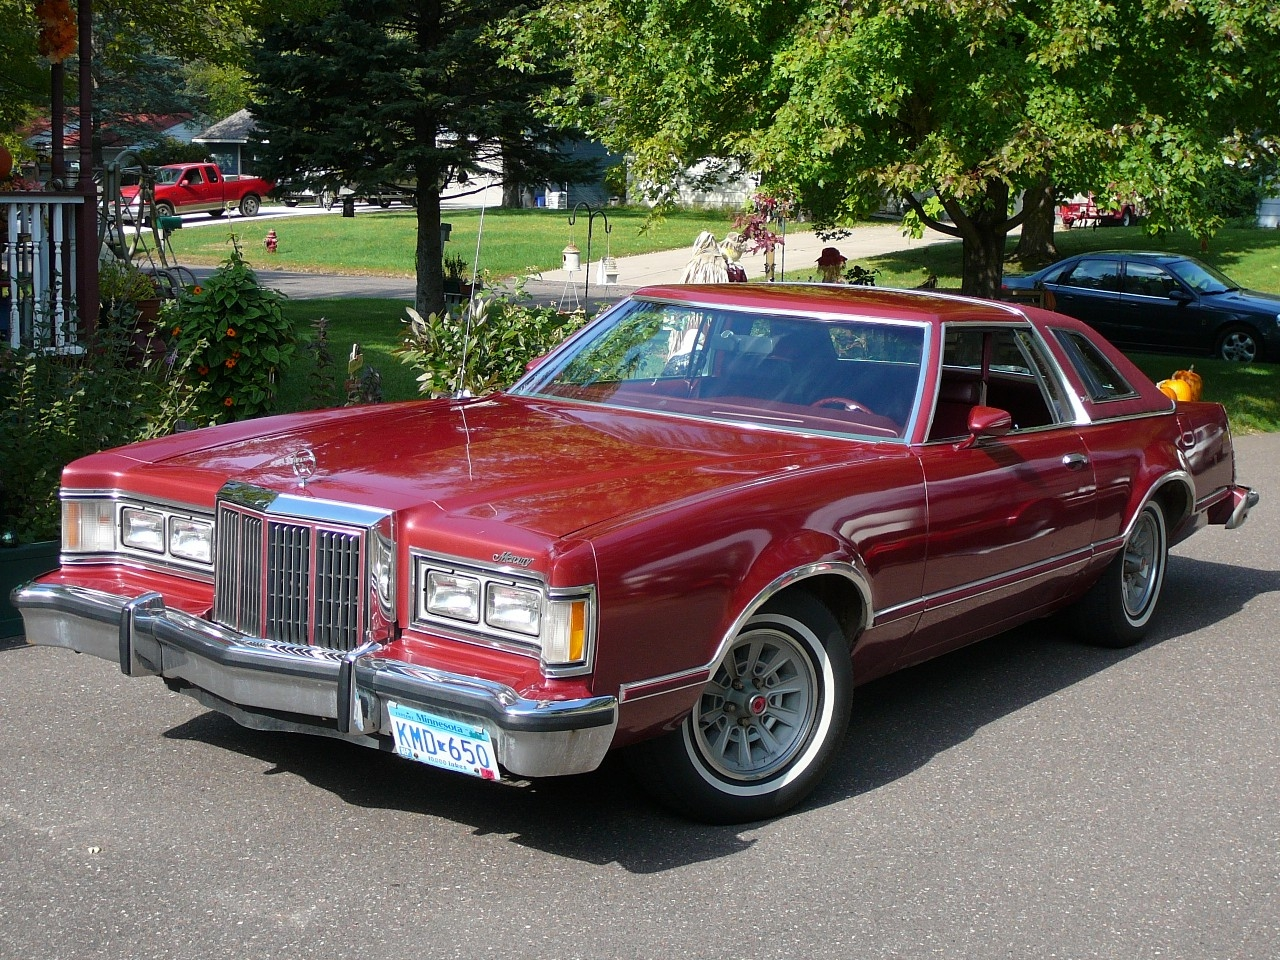 2010 Ford Fusion For Sale >> MyMarquis 1978 Mercury Cougar Specs, Photos, Modification ...